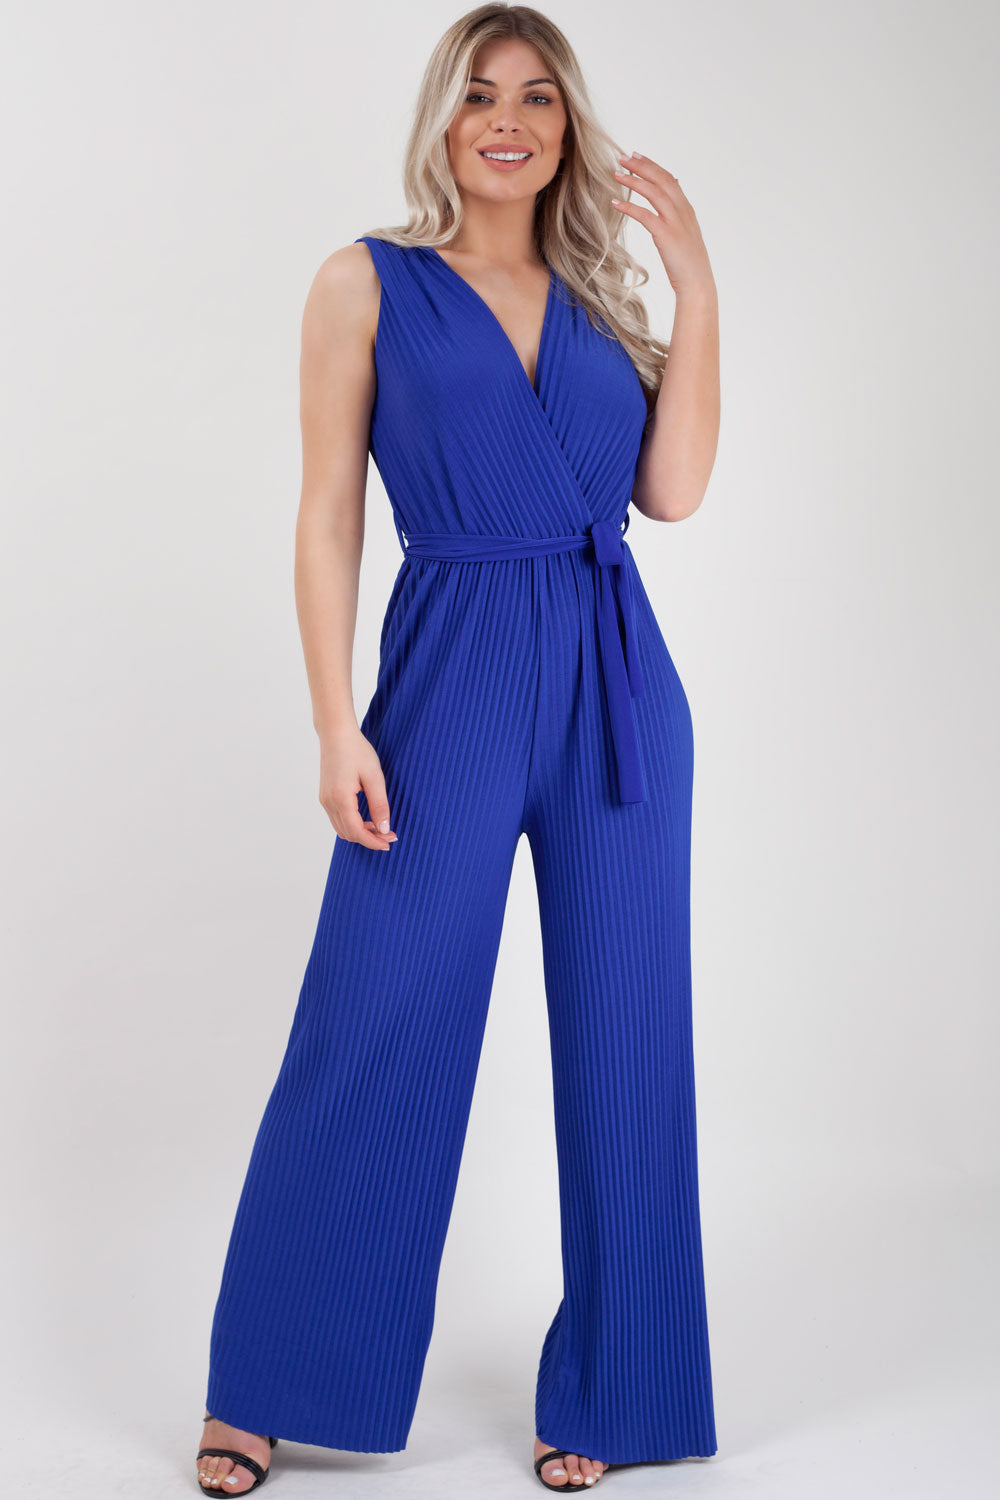 wide leg jumpsuit uk size 8